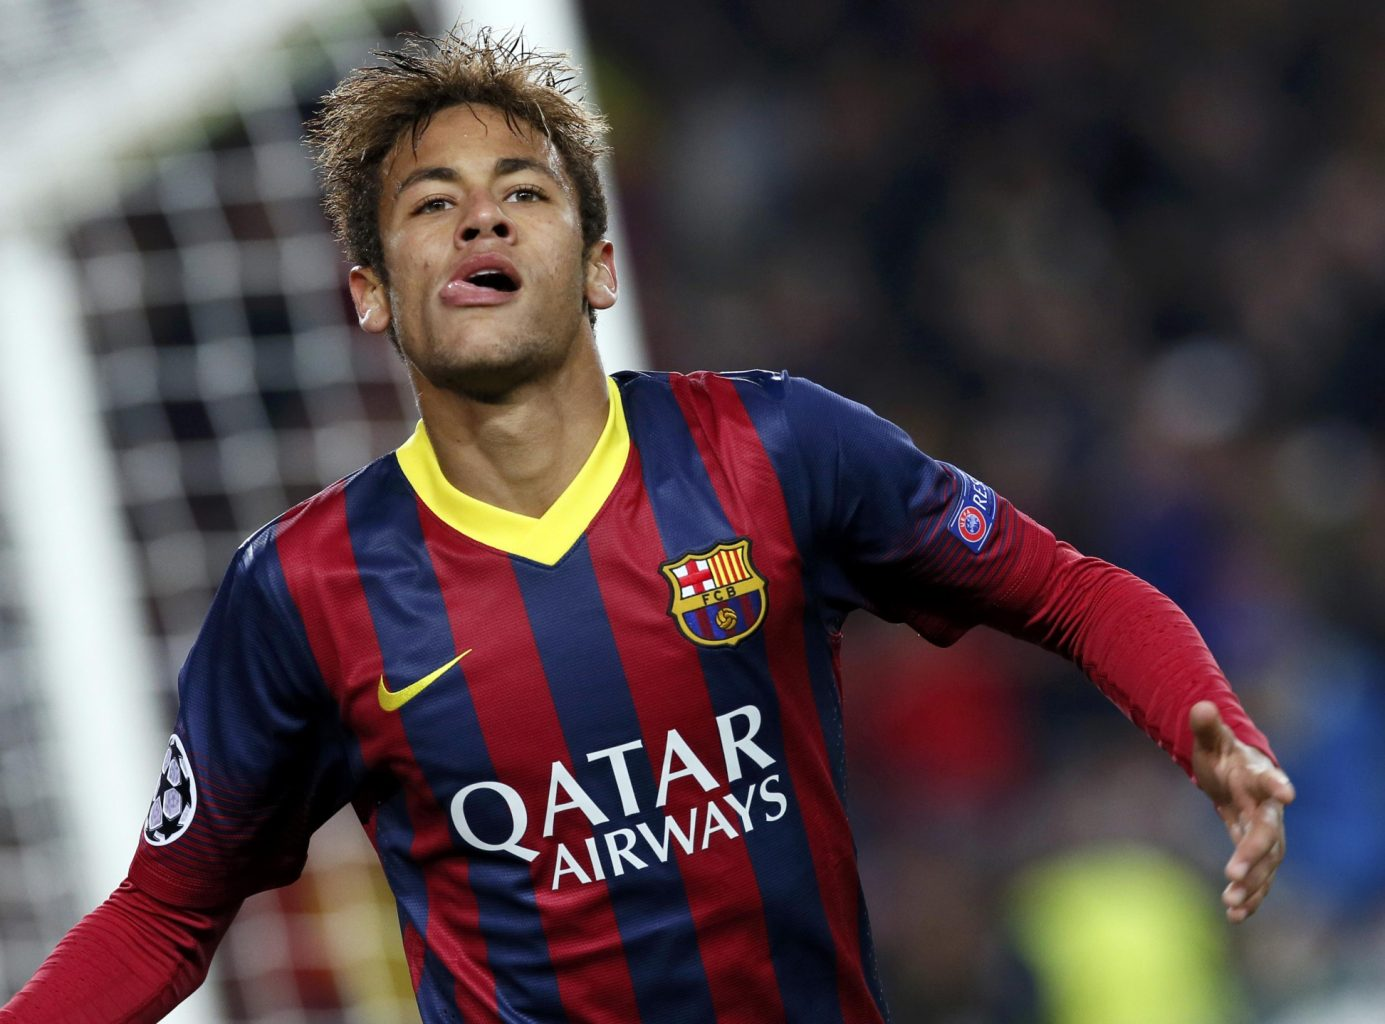 Neymar biting his tongue, after scoring for Barcelona